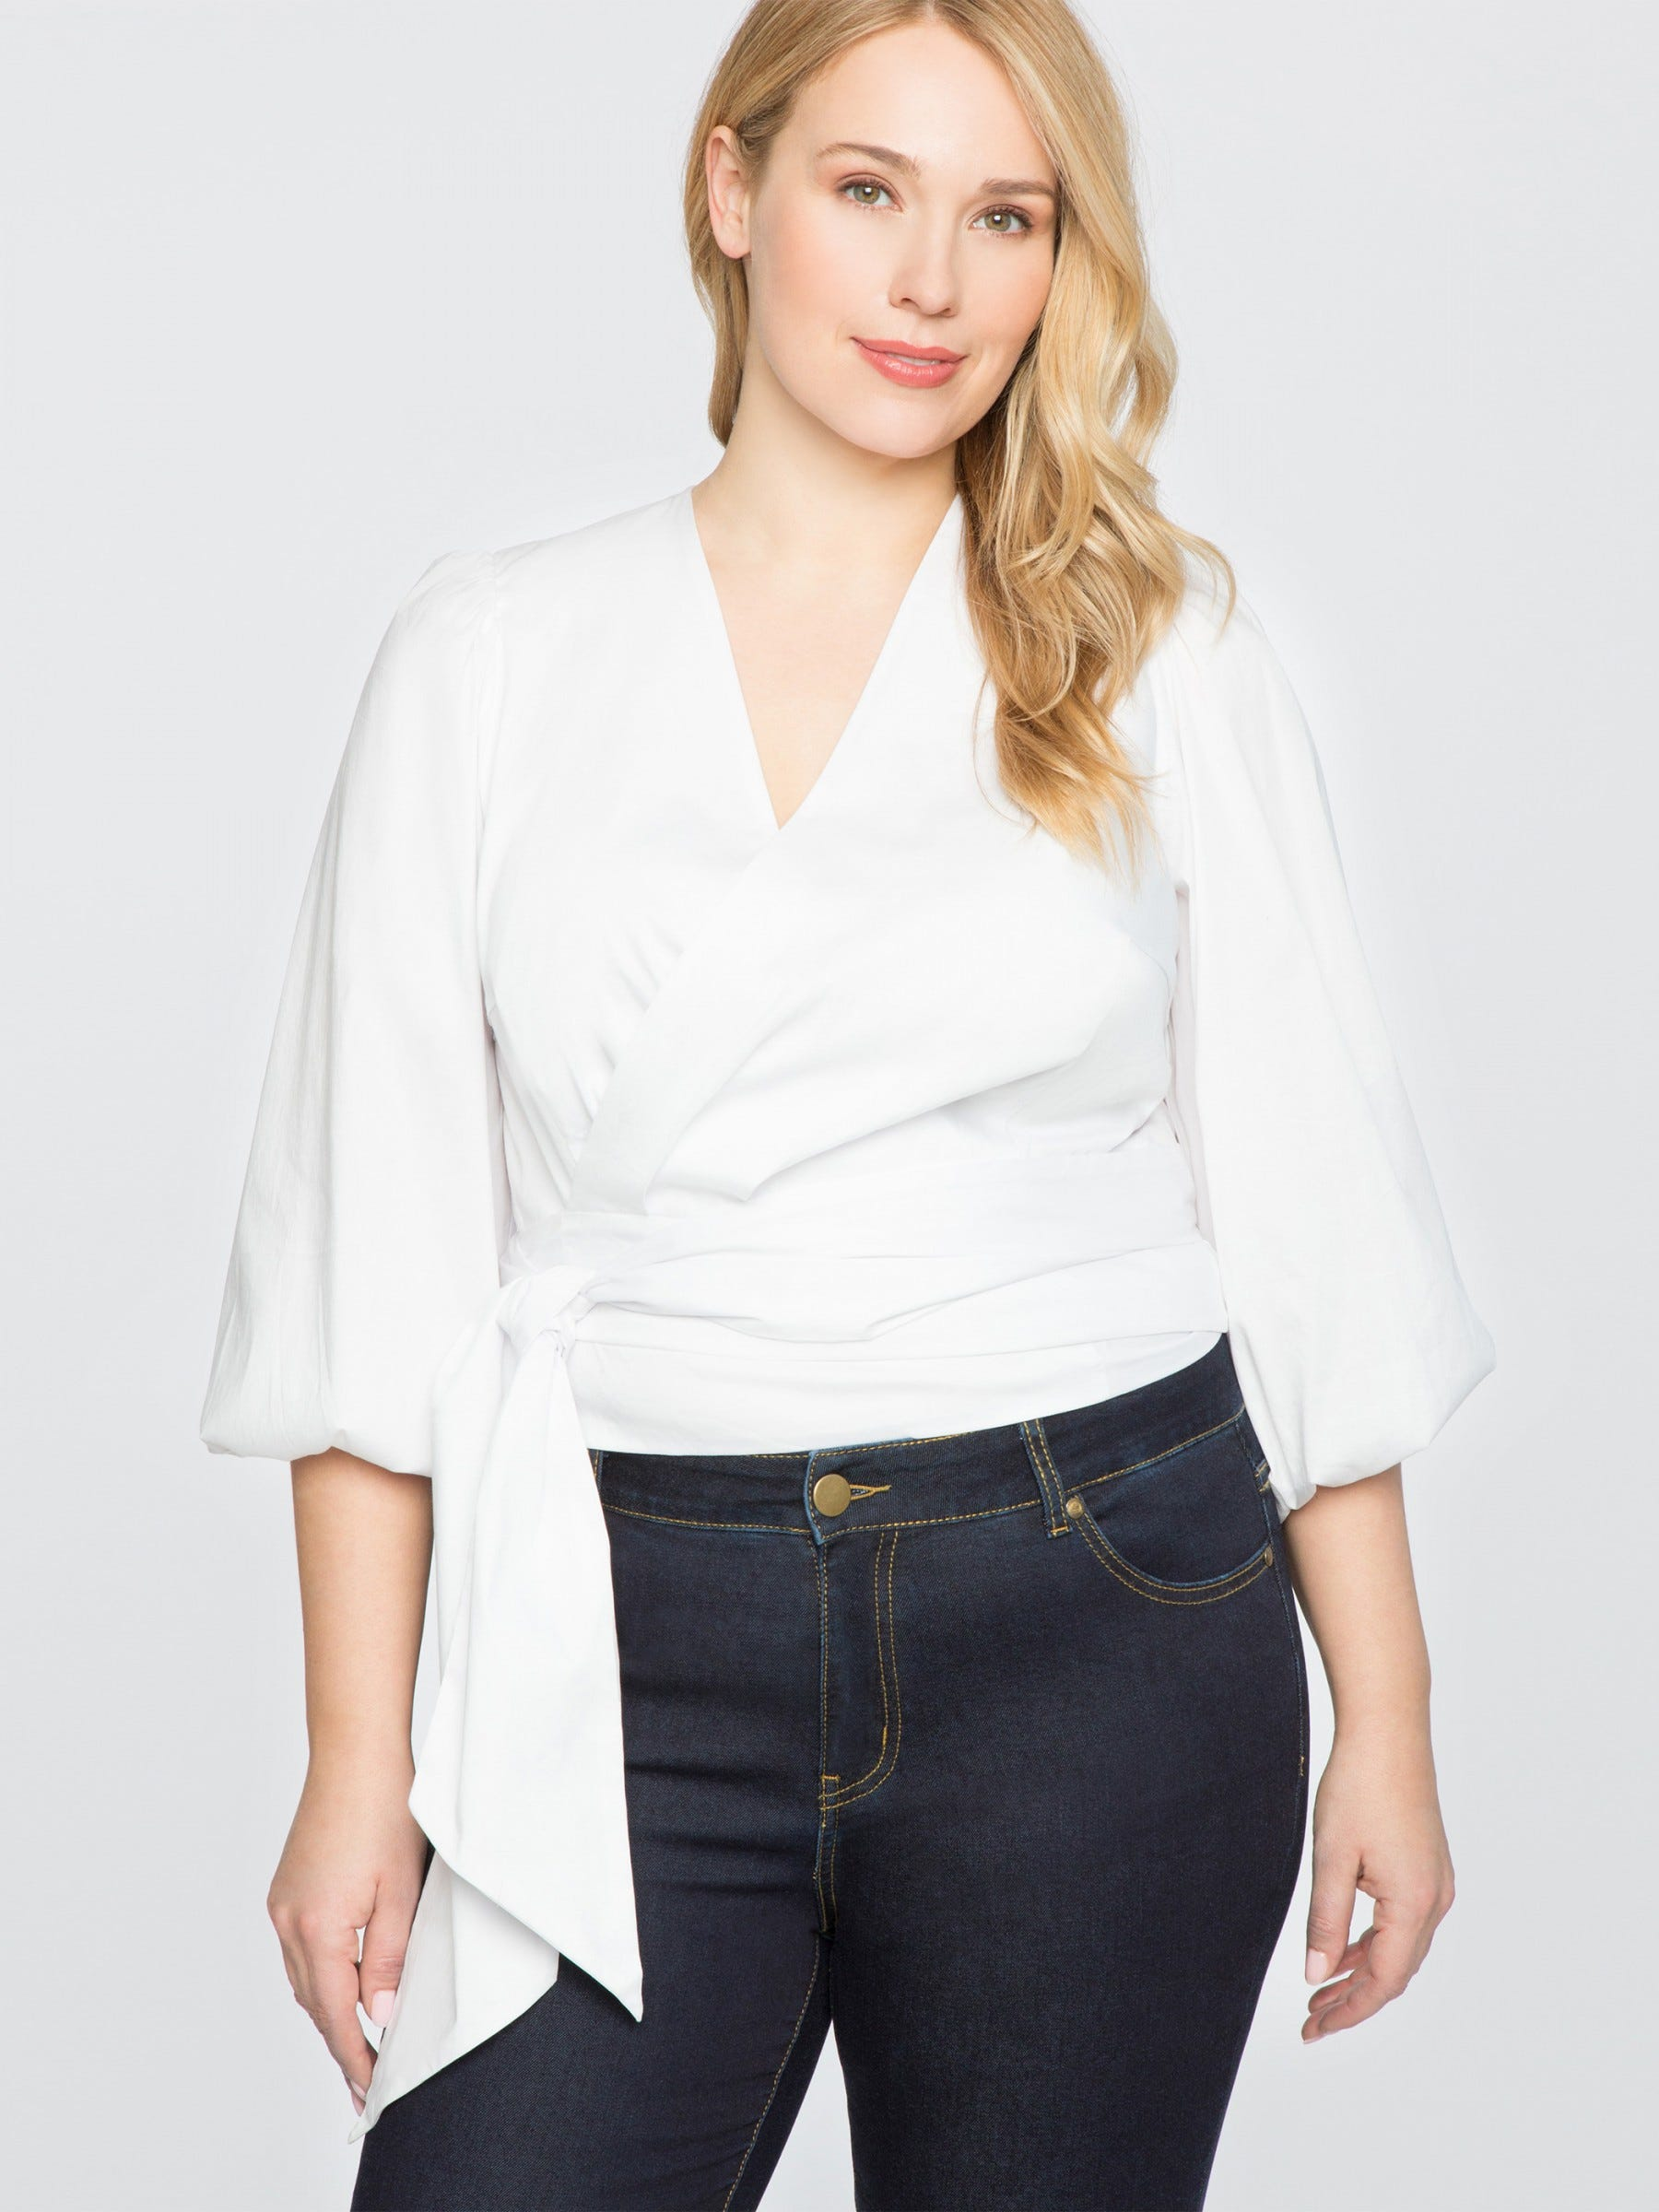 5ad2913974d01 Draper James And Eloquii Plus Size Collection